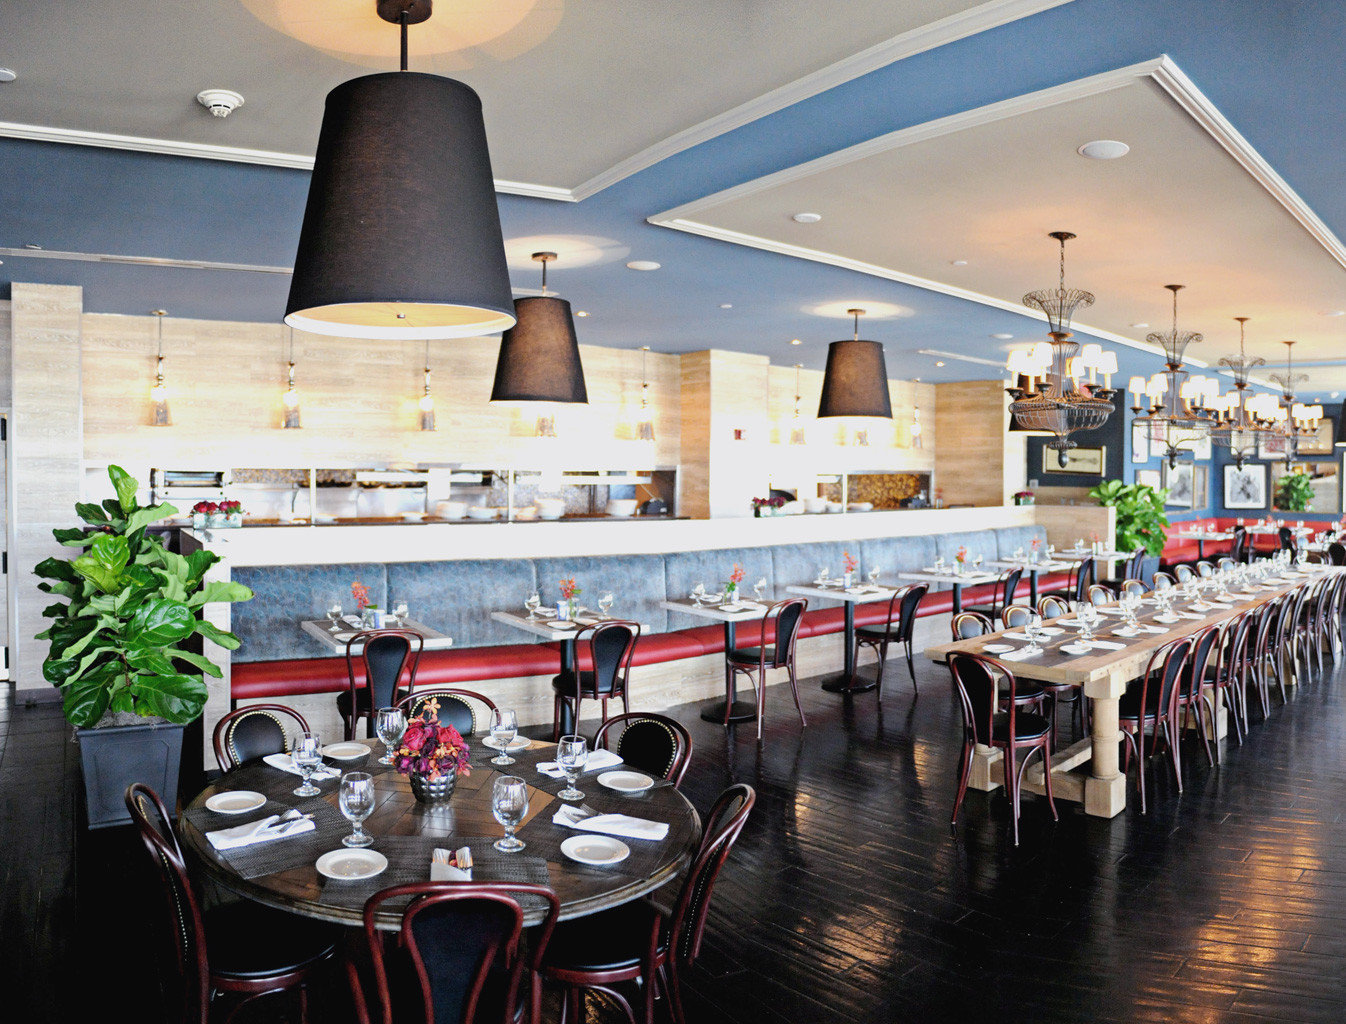 Dining Drink Eat Waterfront restaurant scene function hall